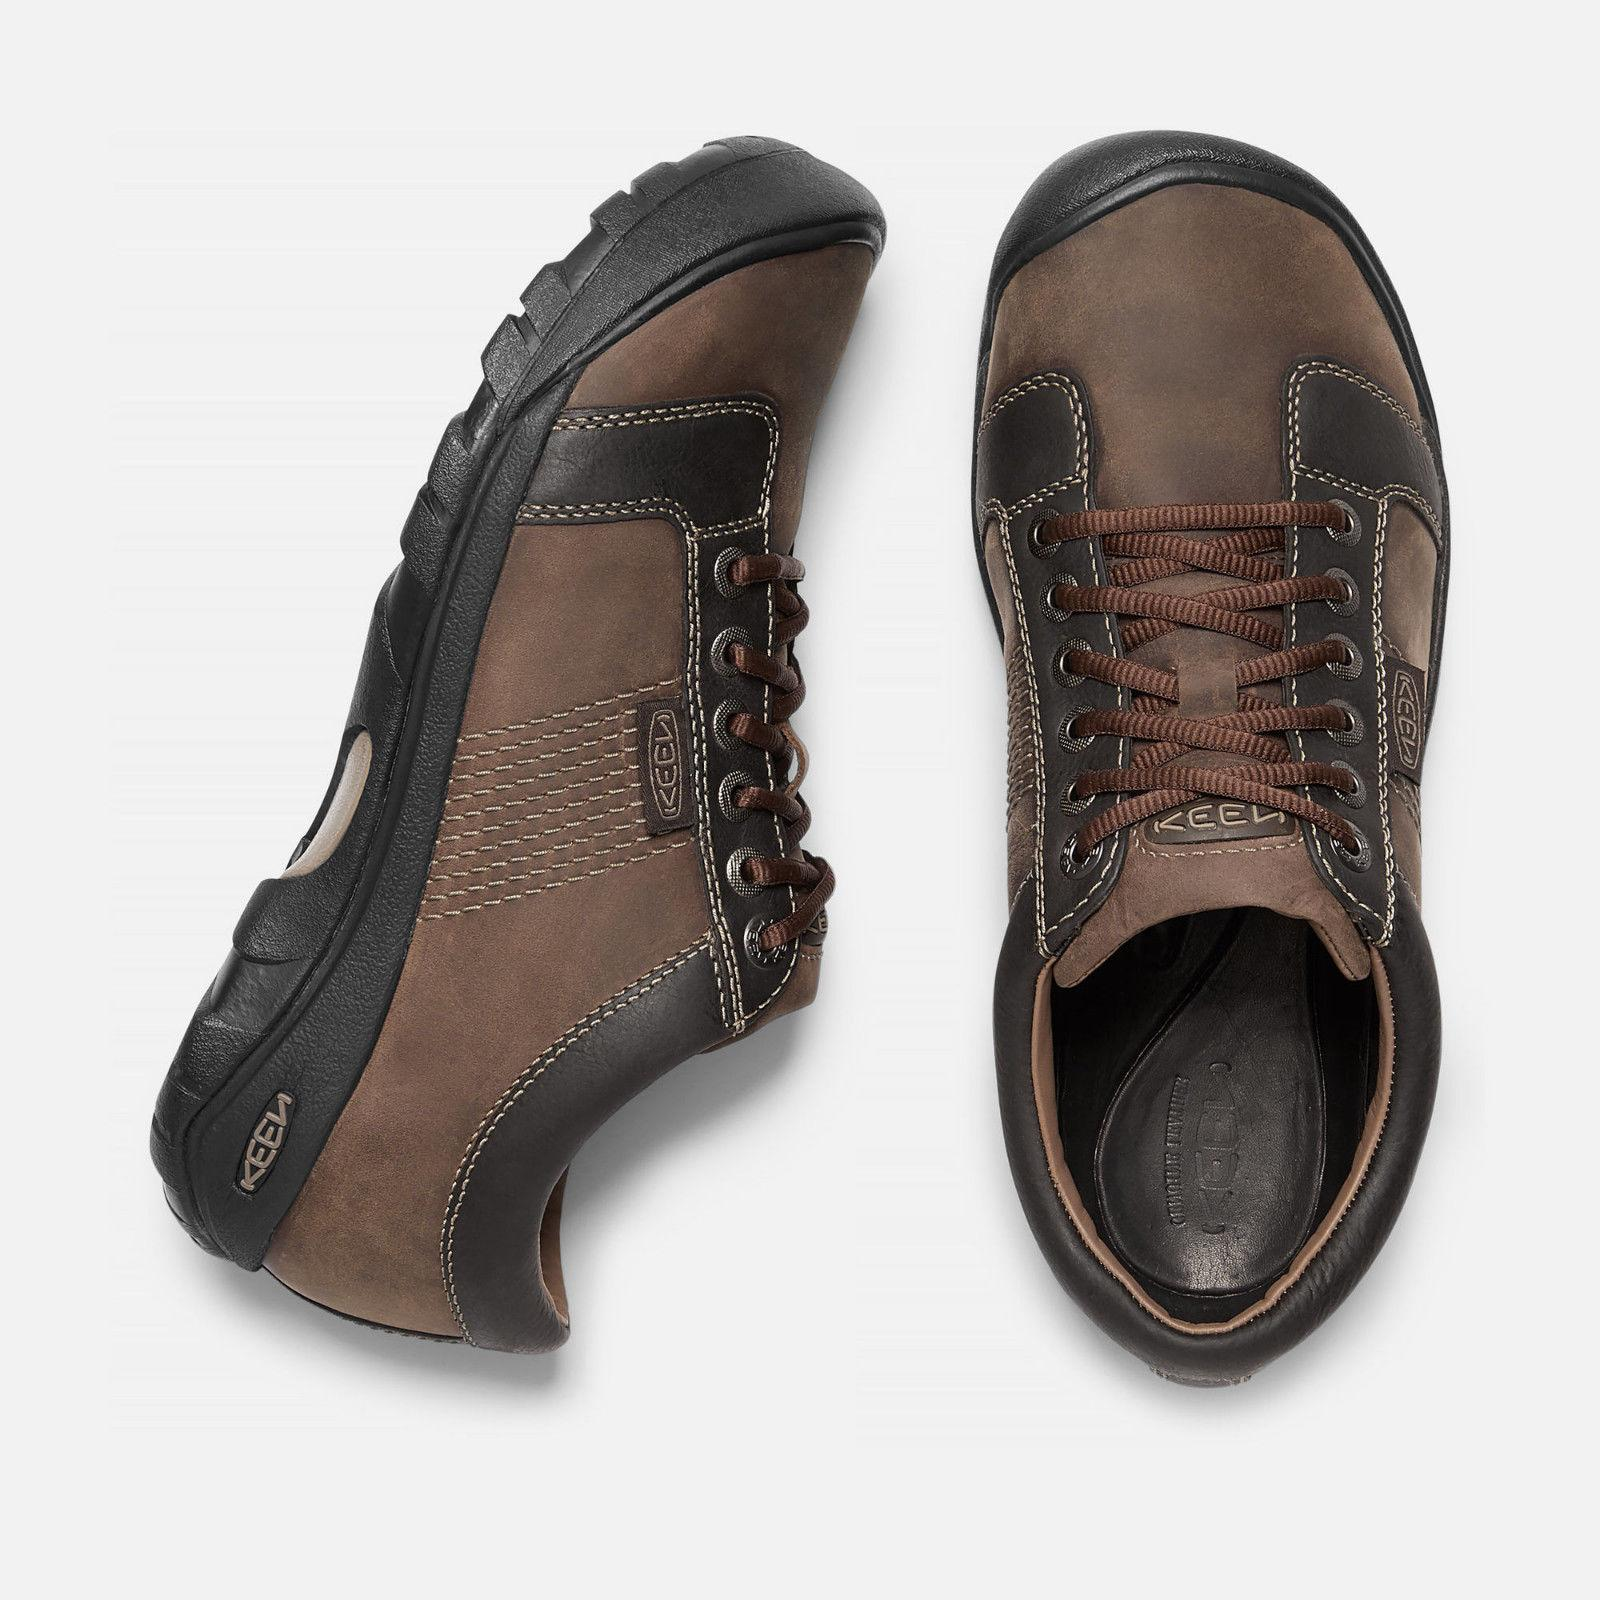 KEEN Men's - MEDIUM NEW WITH BOX WITH TAG